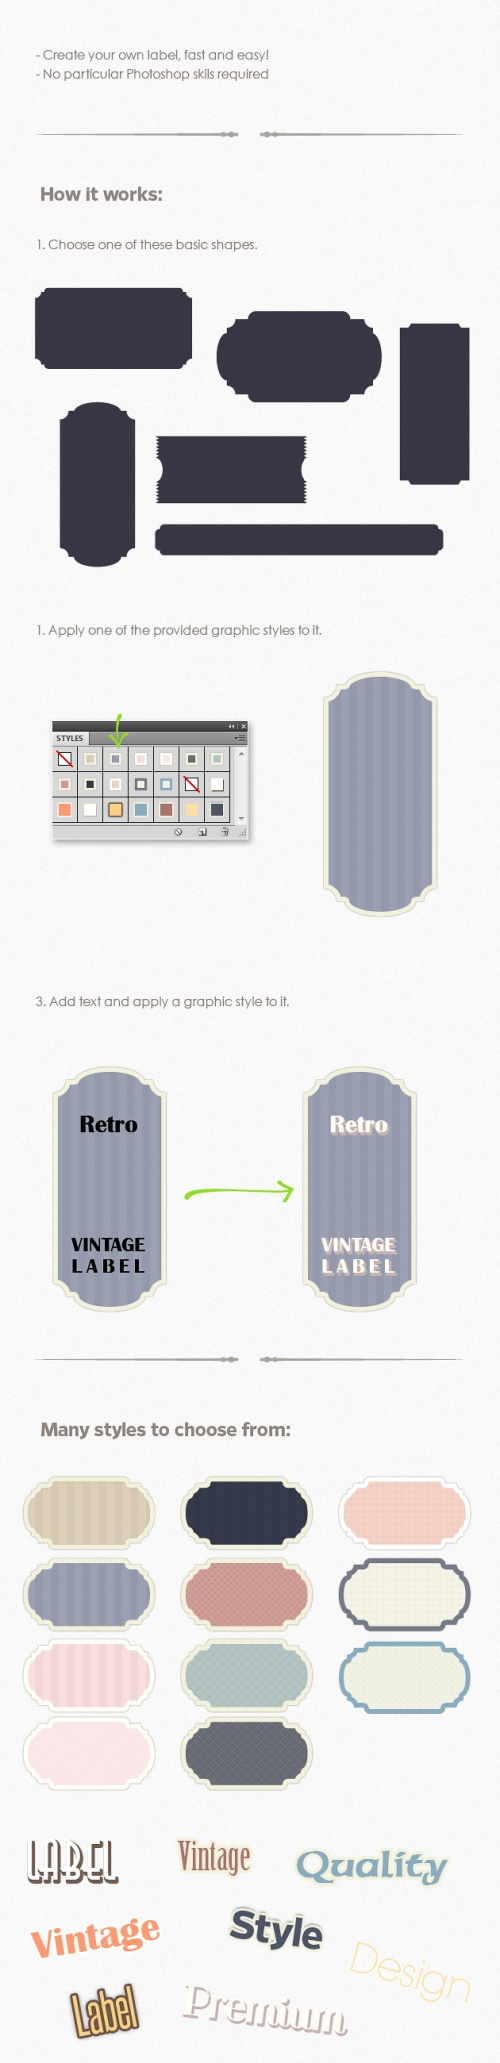 Designtnt - Retro Vintage Labels PS Generator